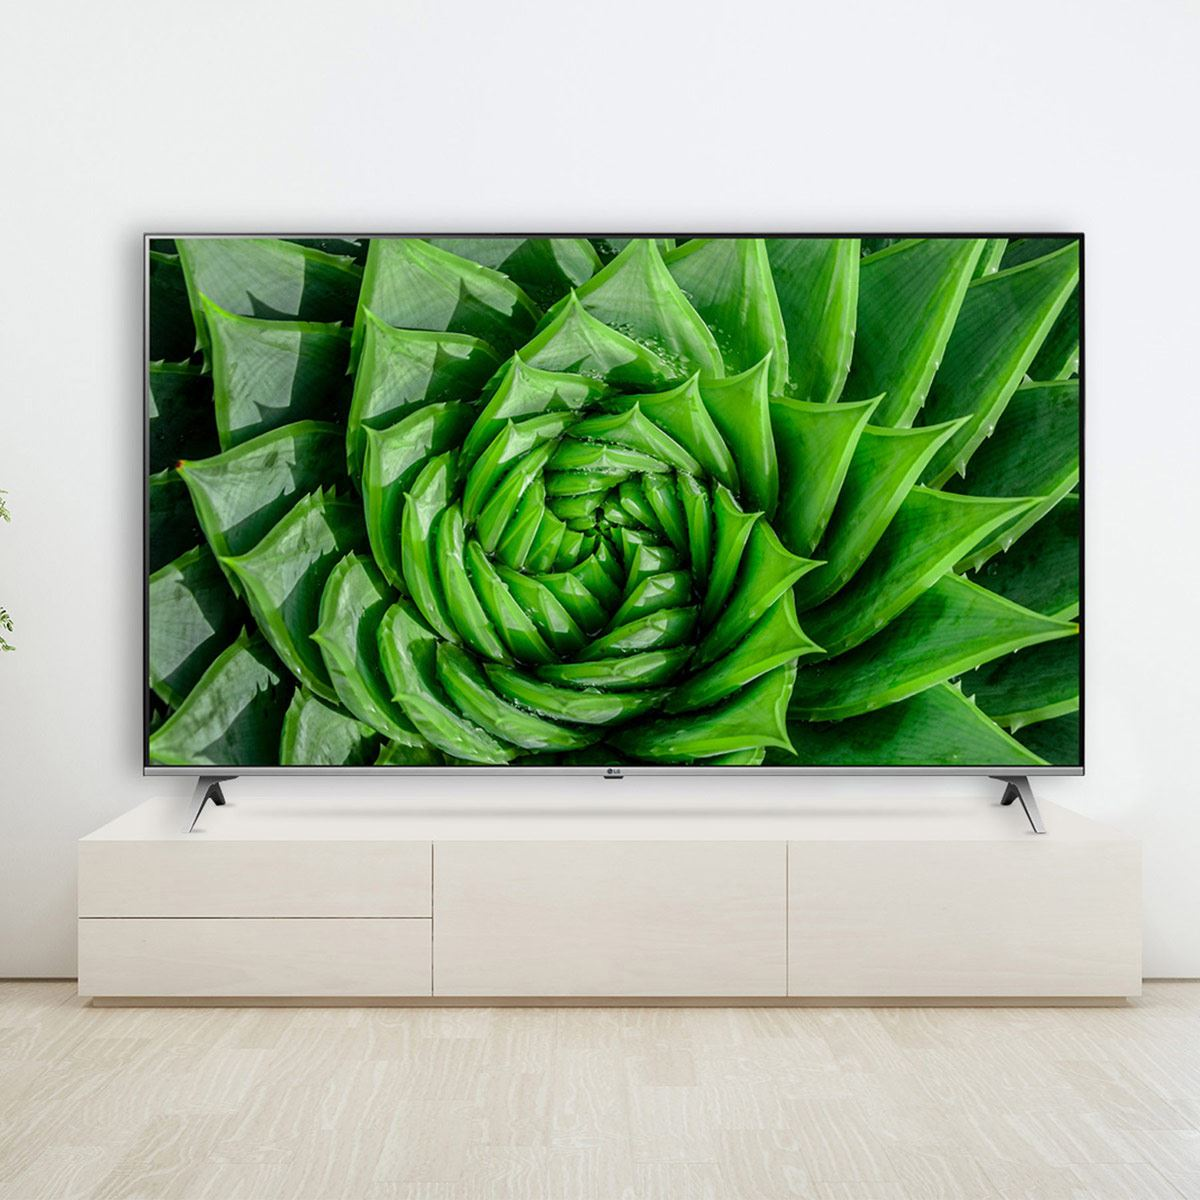 Pantalla LG UHD TV AI ThinQ 4K 65